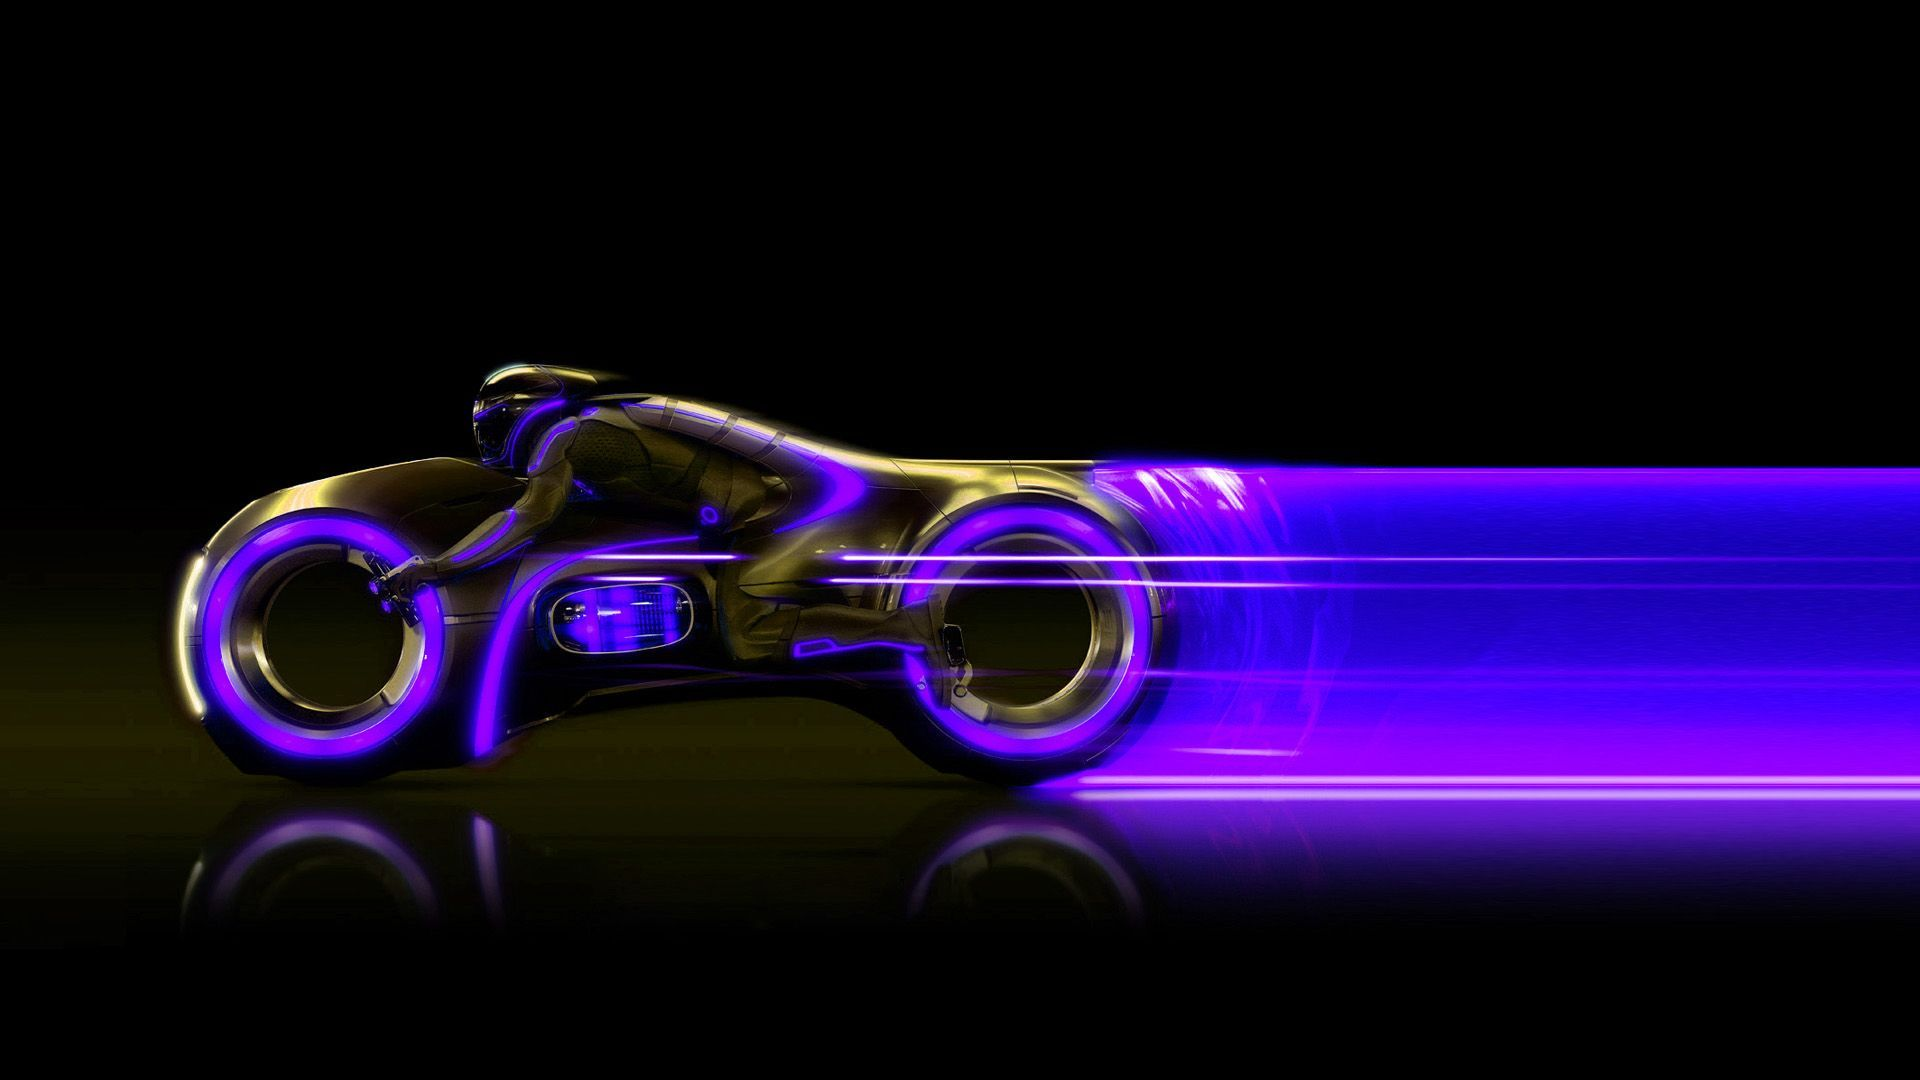 Tron HD Wallpapers - Wallpaper Cave